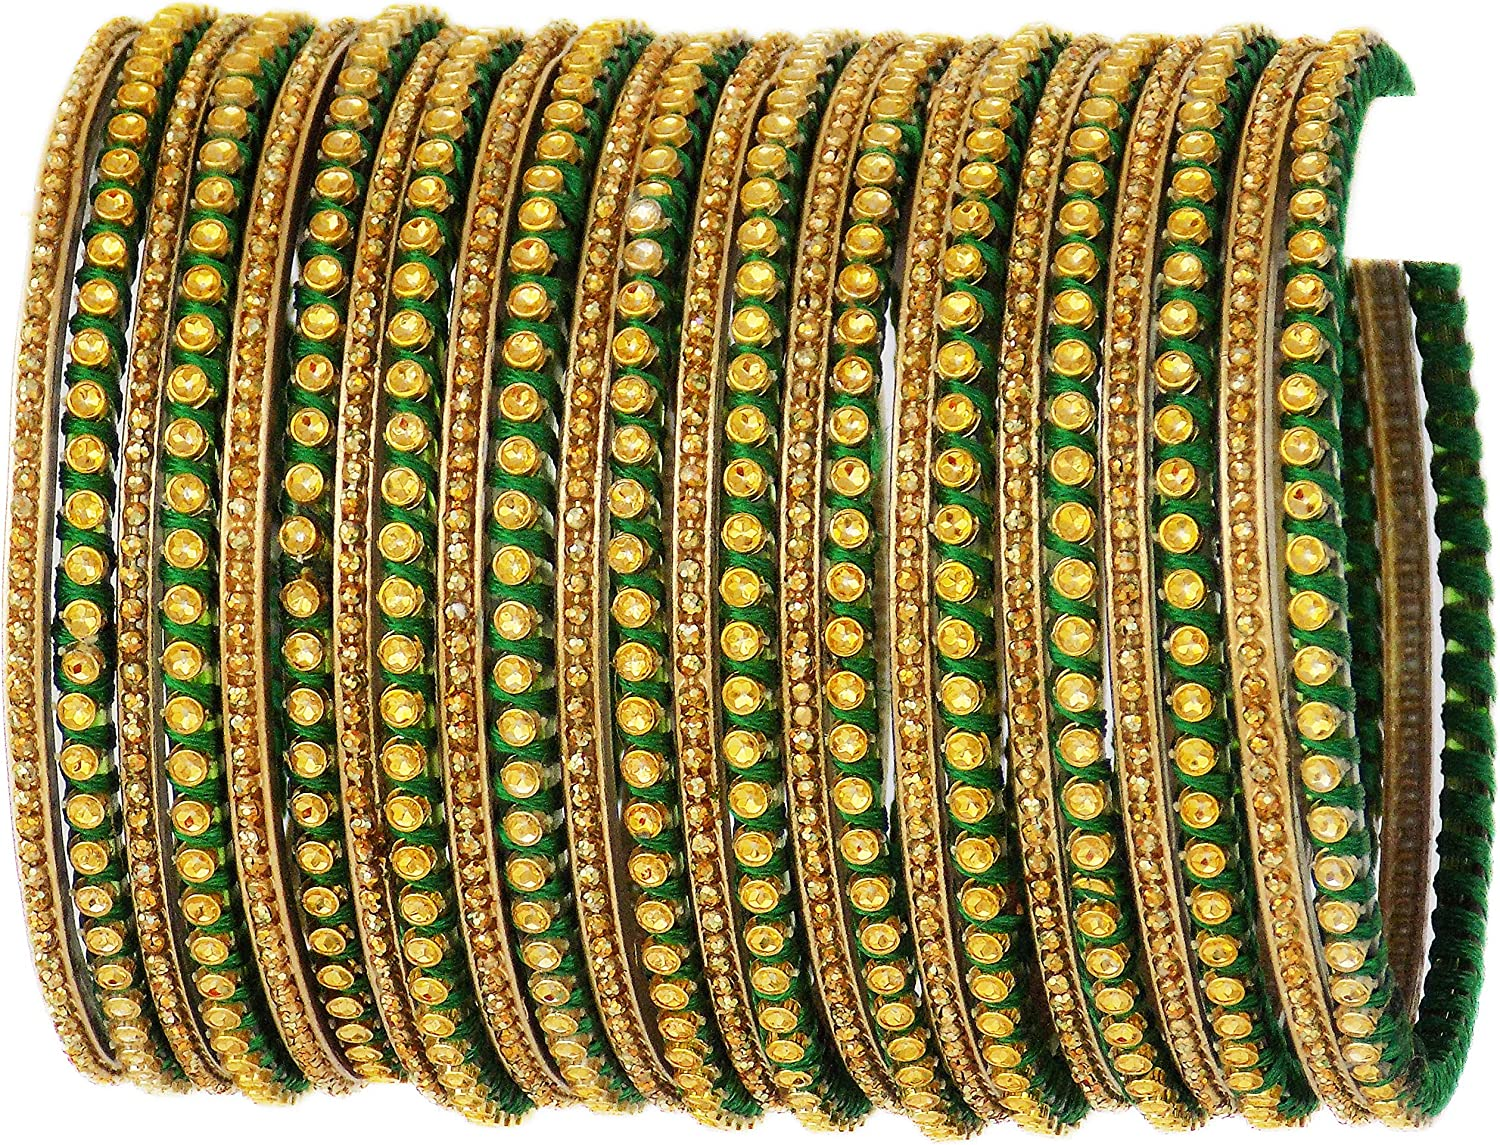 JD'Z COLLECTION Indian Glass Bangles Set Glass Bangle Set for Girls & Women Traditional Bollywood Fashion Jewelry Set of 24